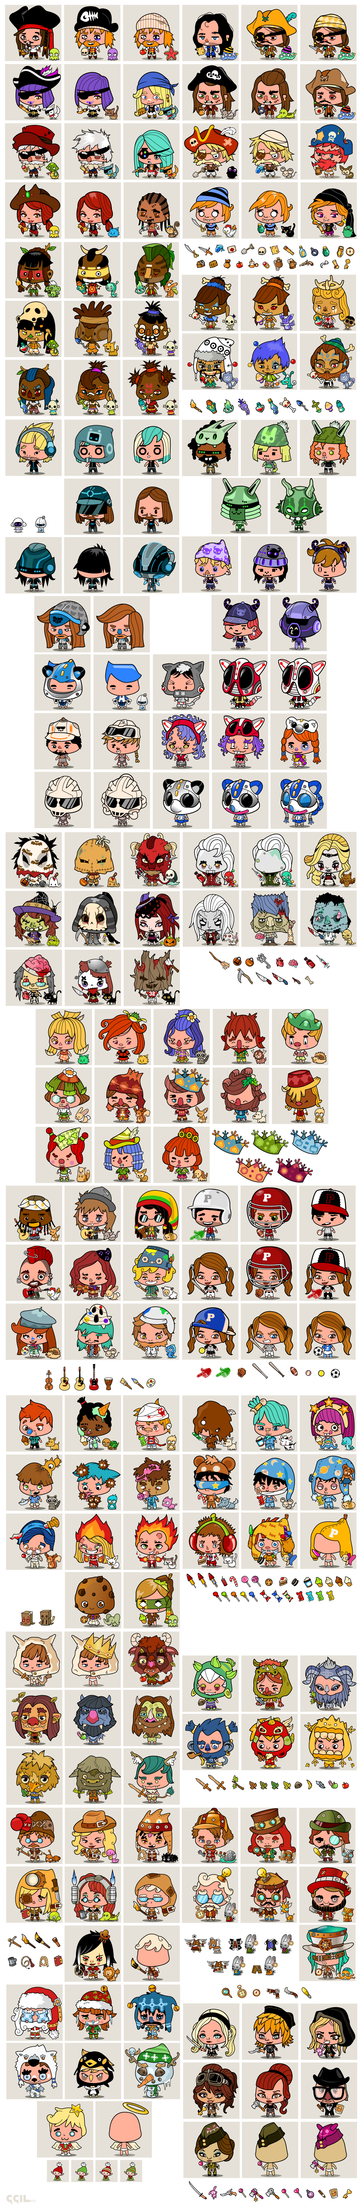 Avatars Playpop by cecile-appert